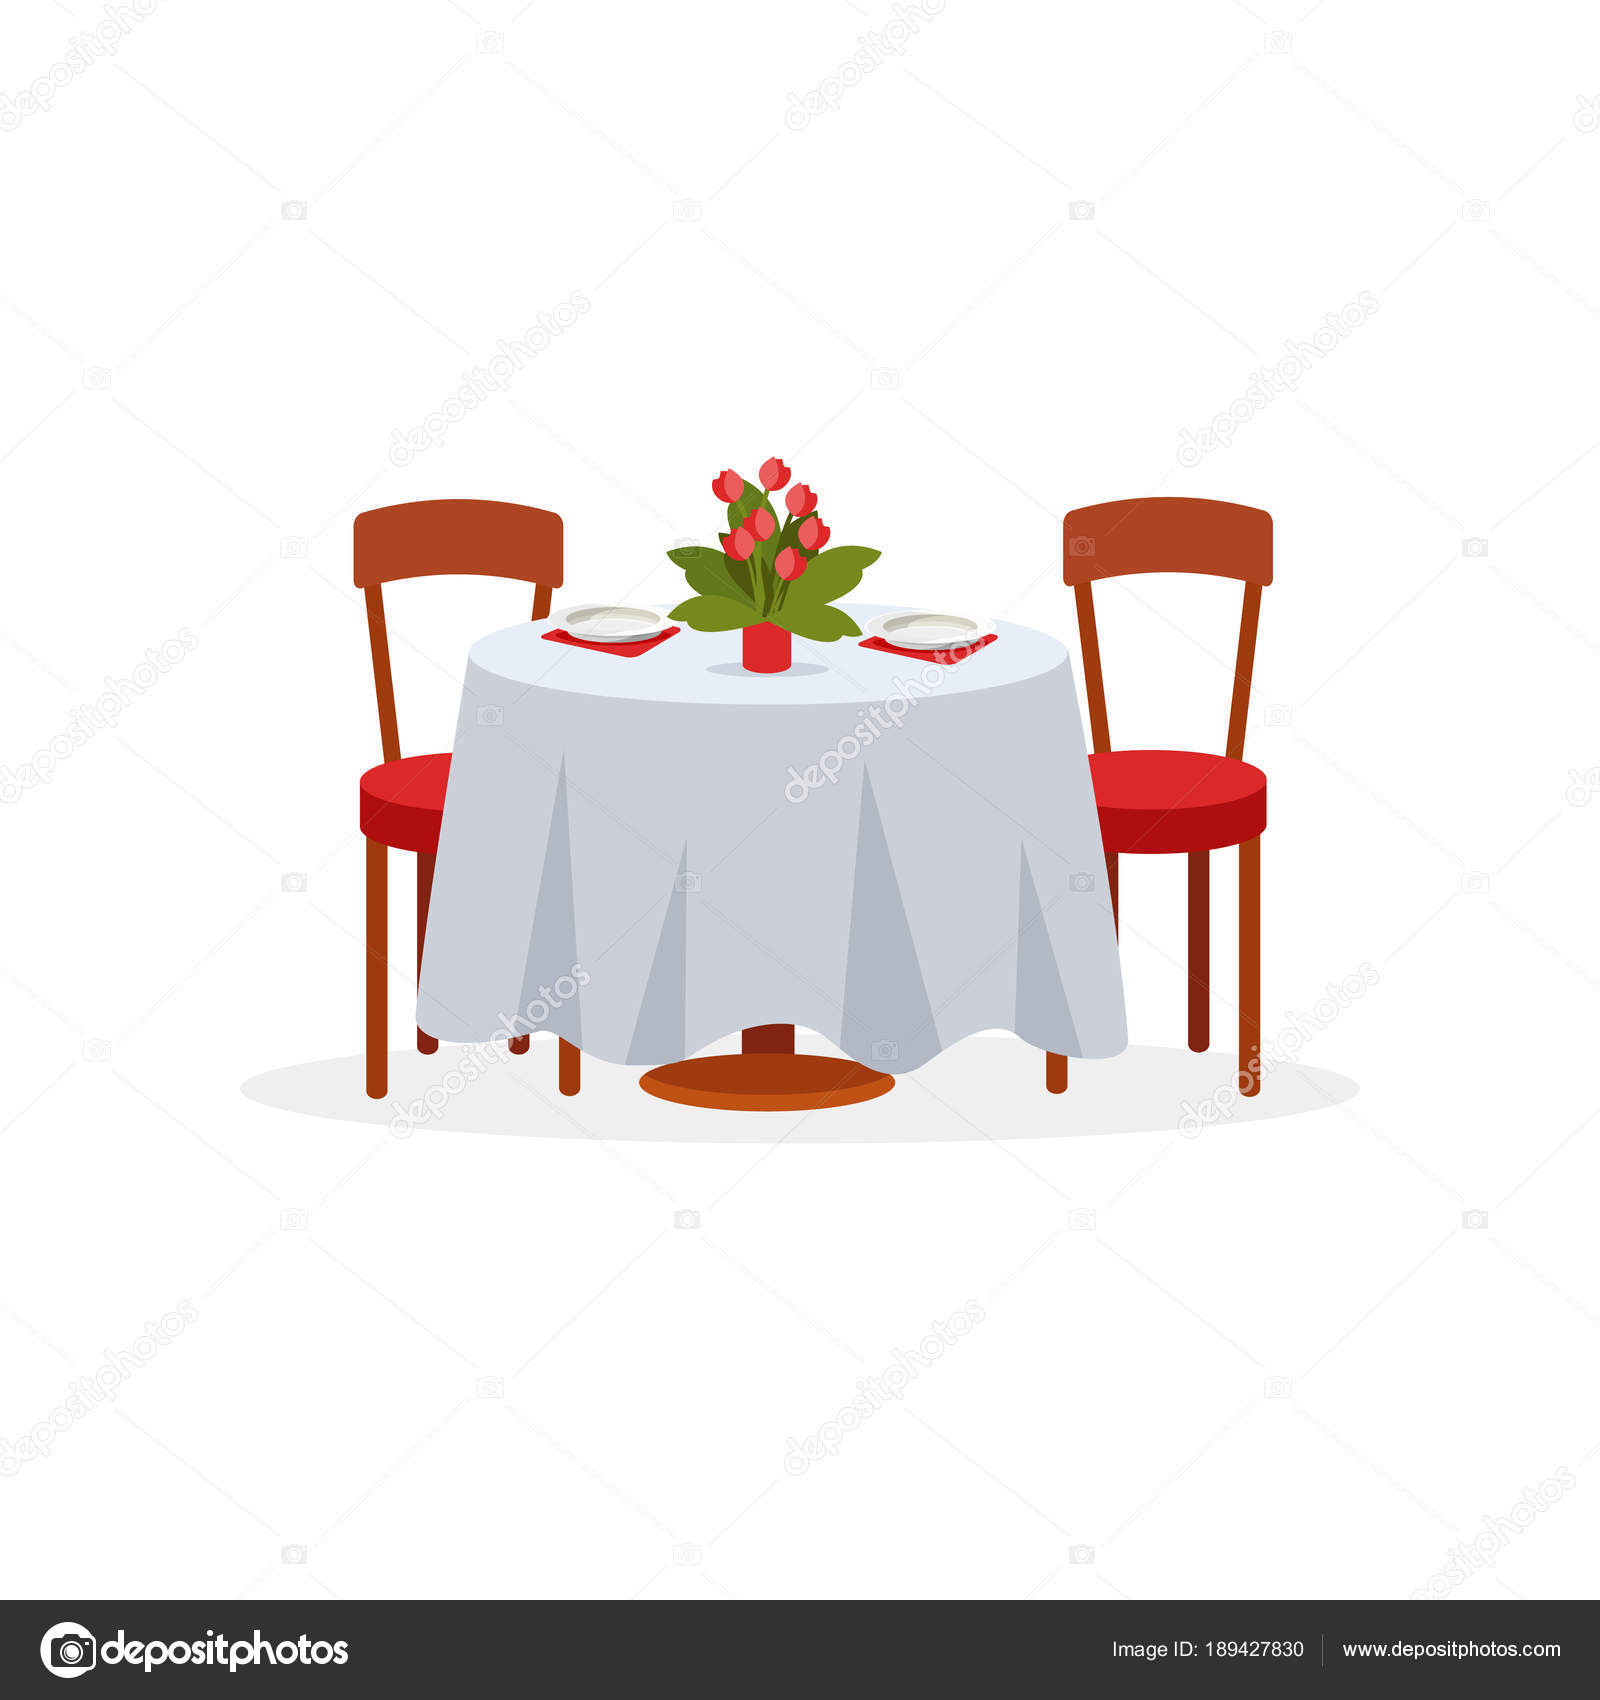 Magnificent Dining Table And Chairs For Two People Romantic Dinner For Download Free Architecture Designs Scobabritishbridgeorg